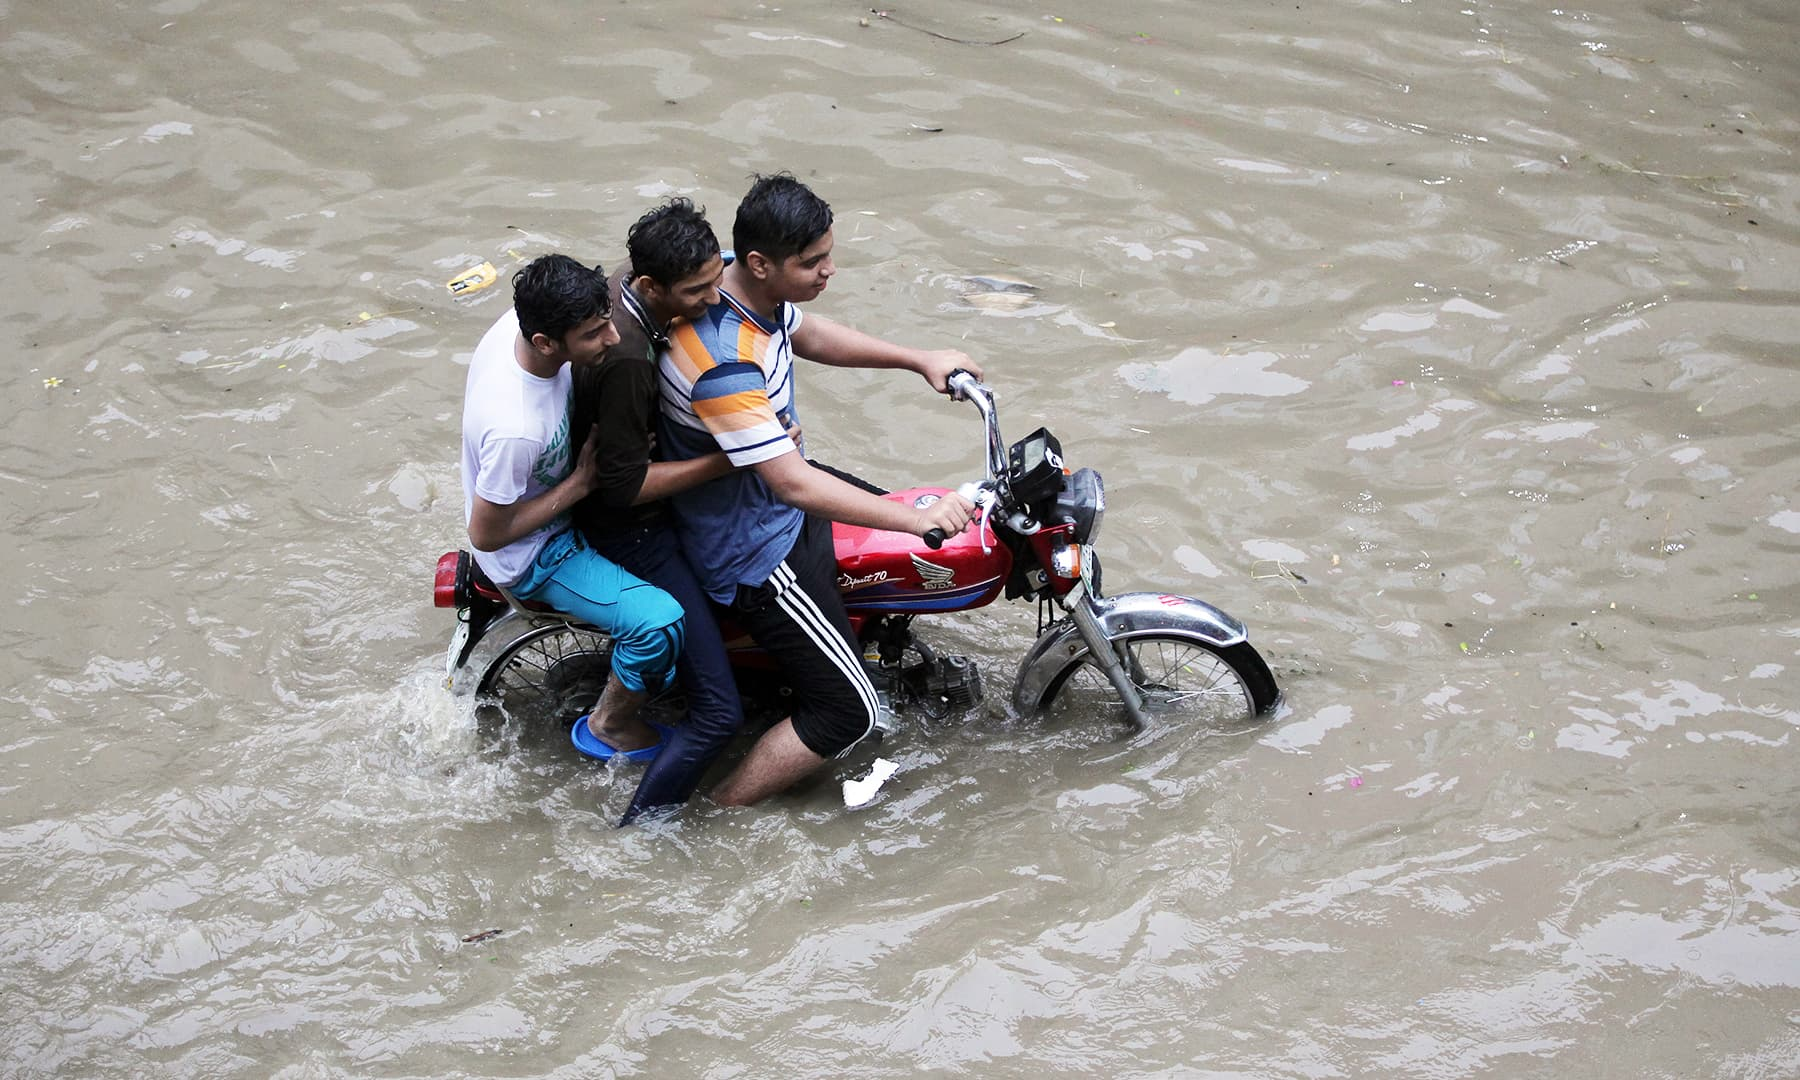 Men ride on a motorbike amid floodwater after the rain in Lahore. — Reuters